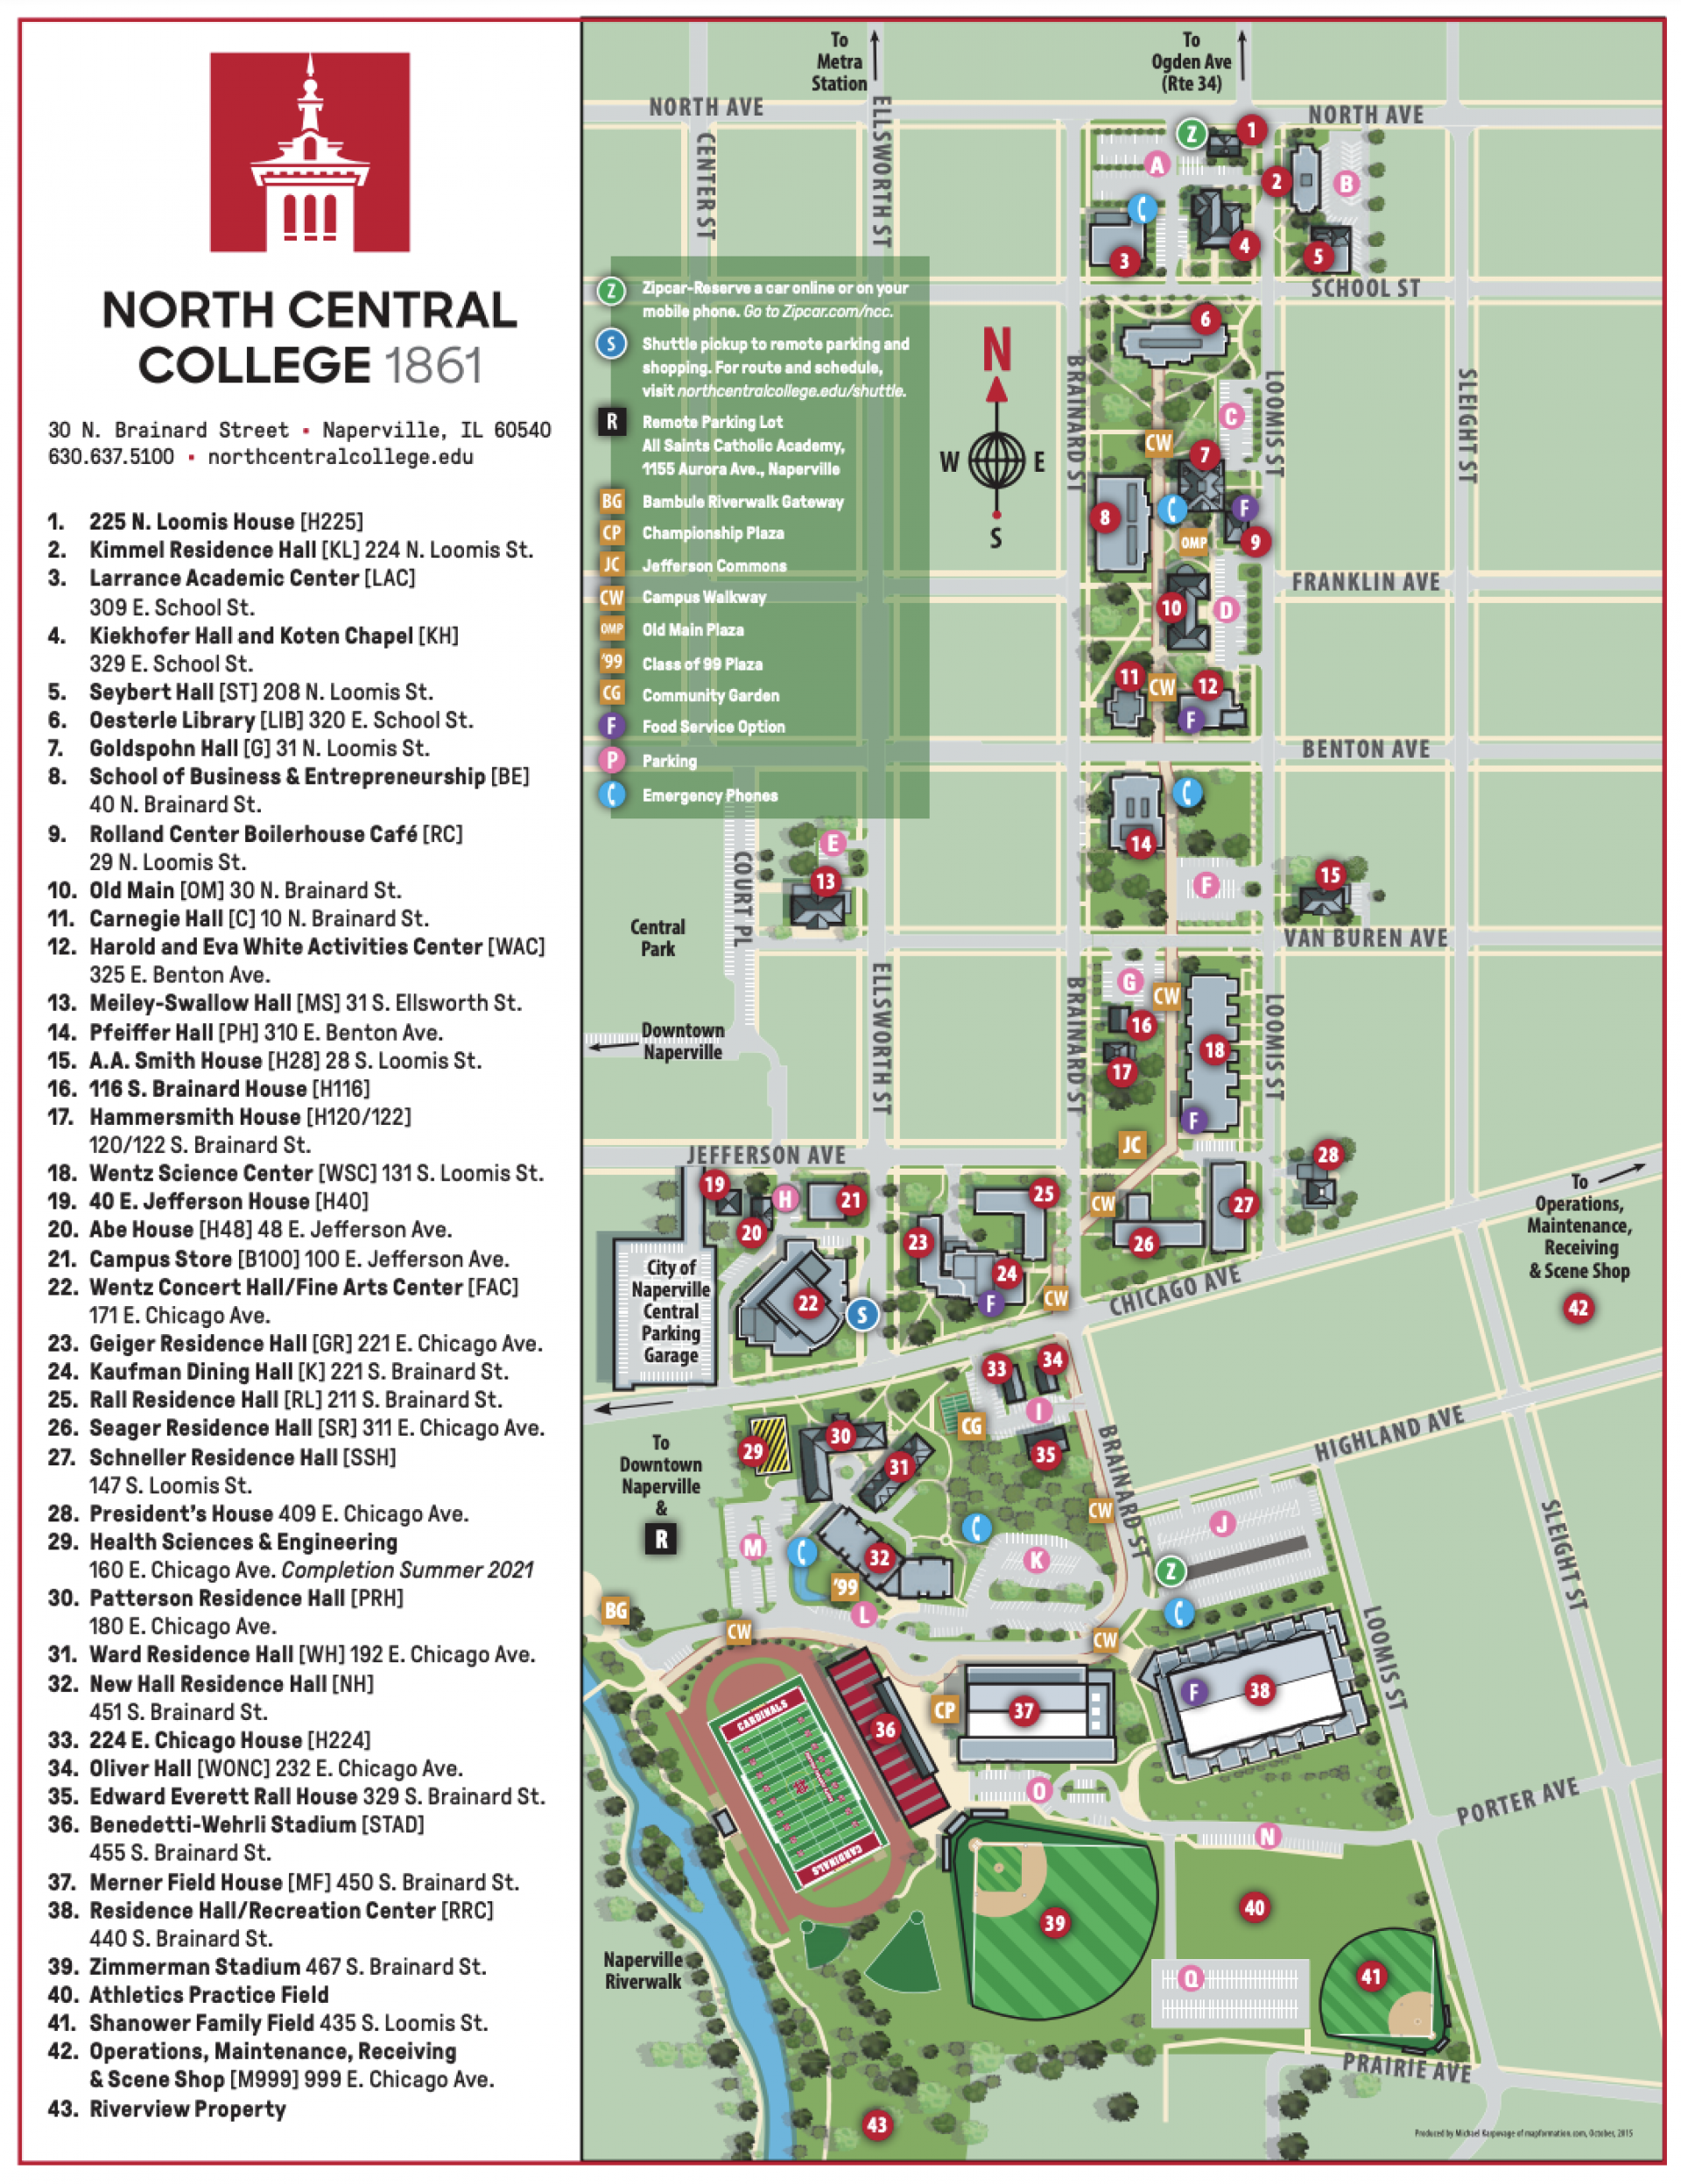 North Central College campus map